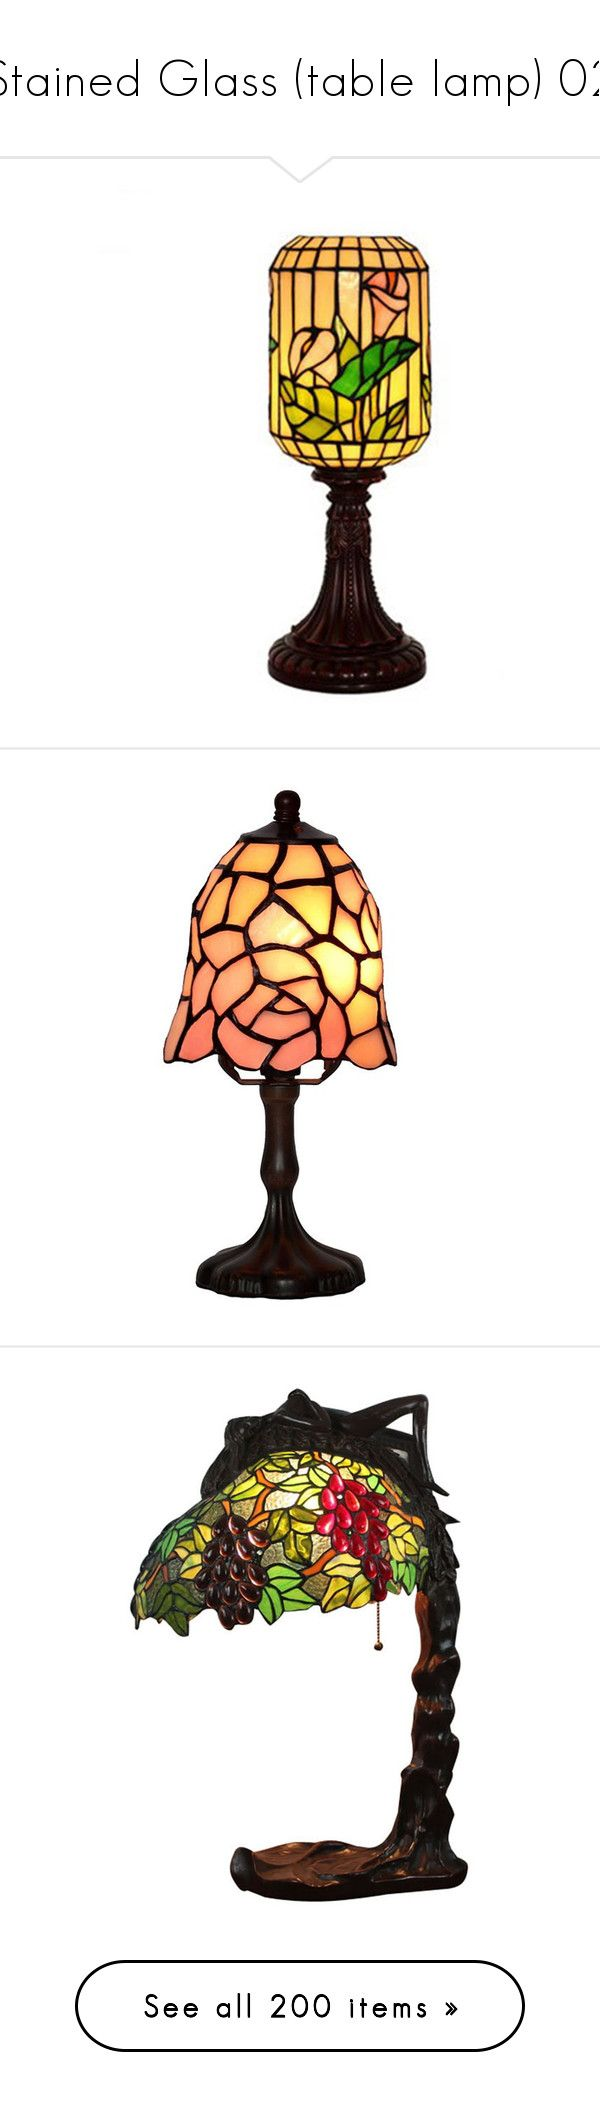 """""""Stained Glass (table lamp) 02"""" by papee ❤ liked on Polyvore featuring home, lighting, table lamps, colored lamps, handmade lamps, tiffany style lighting, tiffany style table lamps, colored lights, flower stem and flower table lamp"""